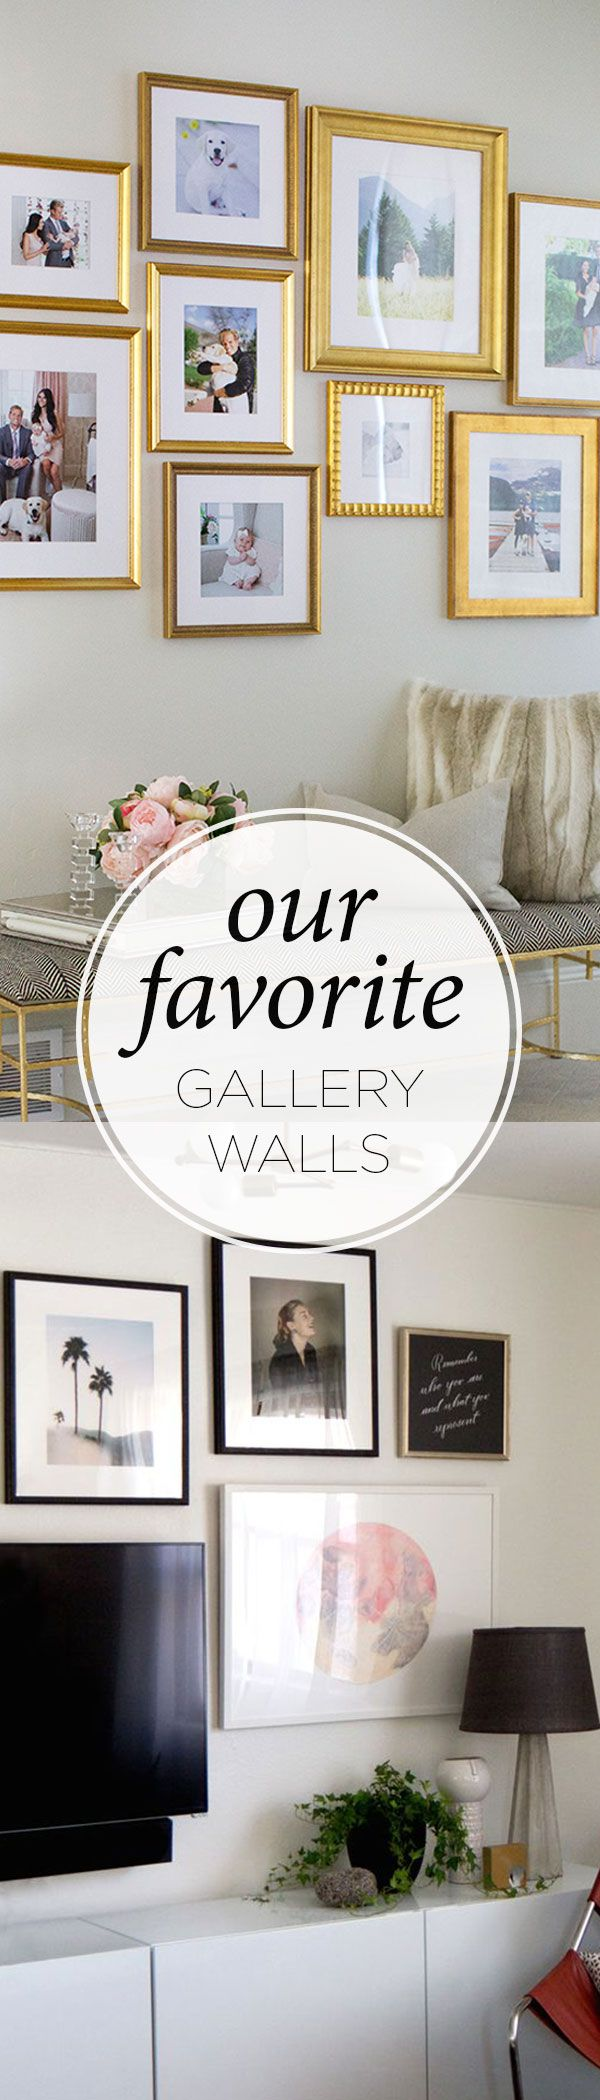 Looking for gallery wall inspiration? Take a look at some of our favorite gallery walls full of special pieces framed with @Framebridge.